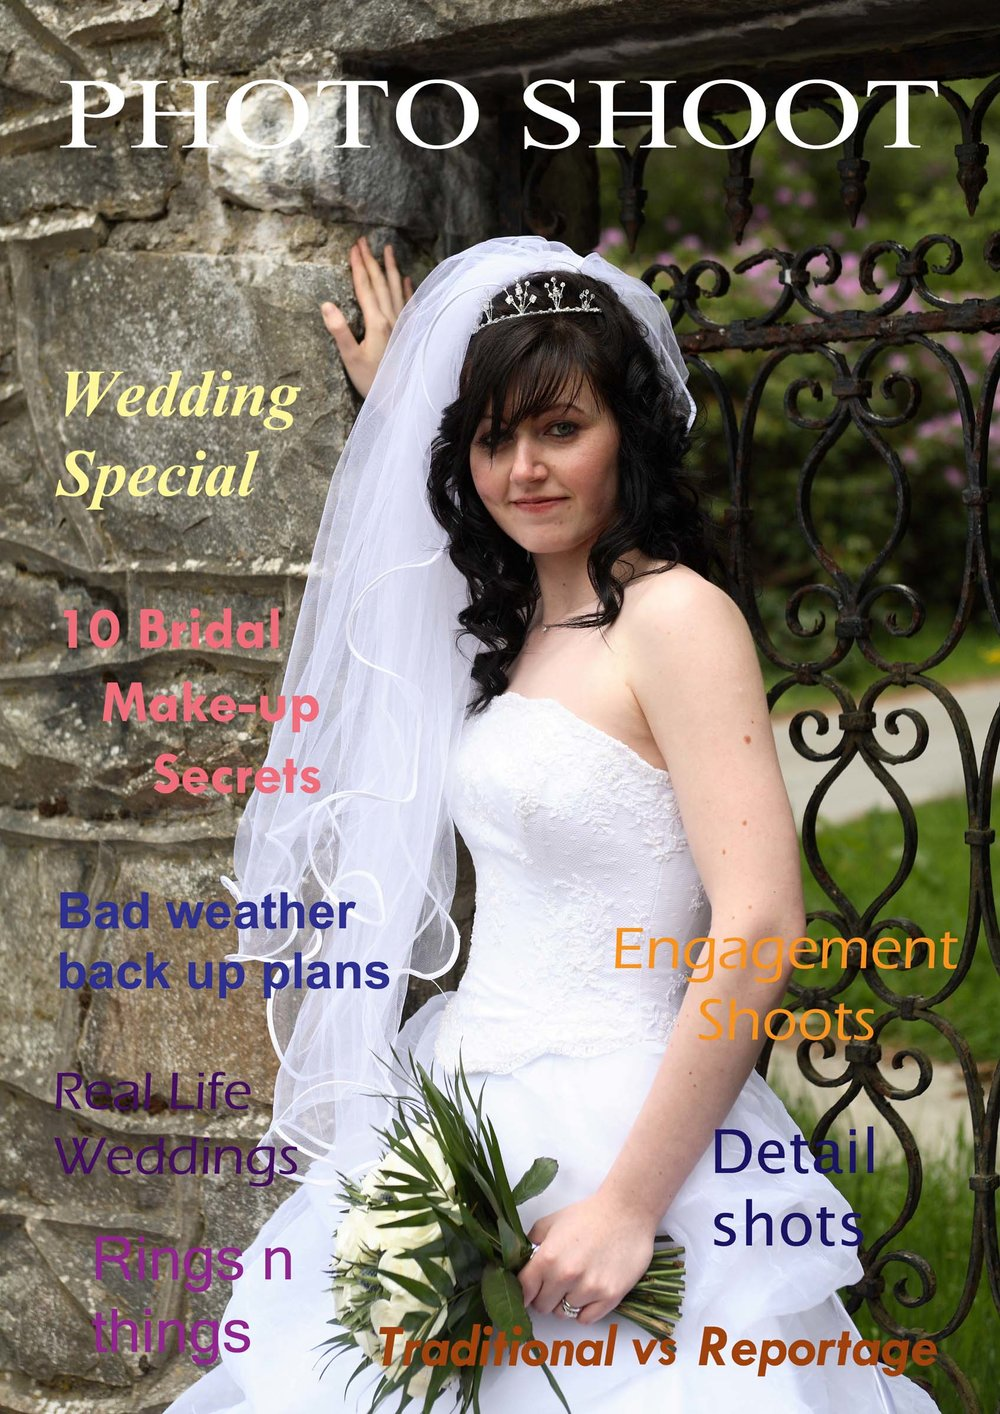 Wedding Photography magazine cover